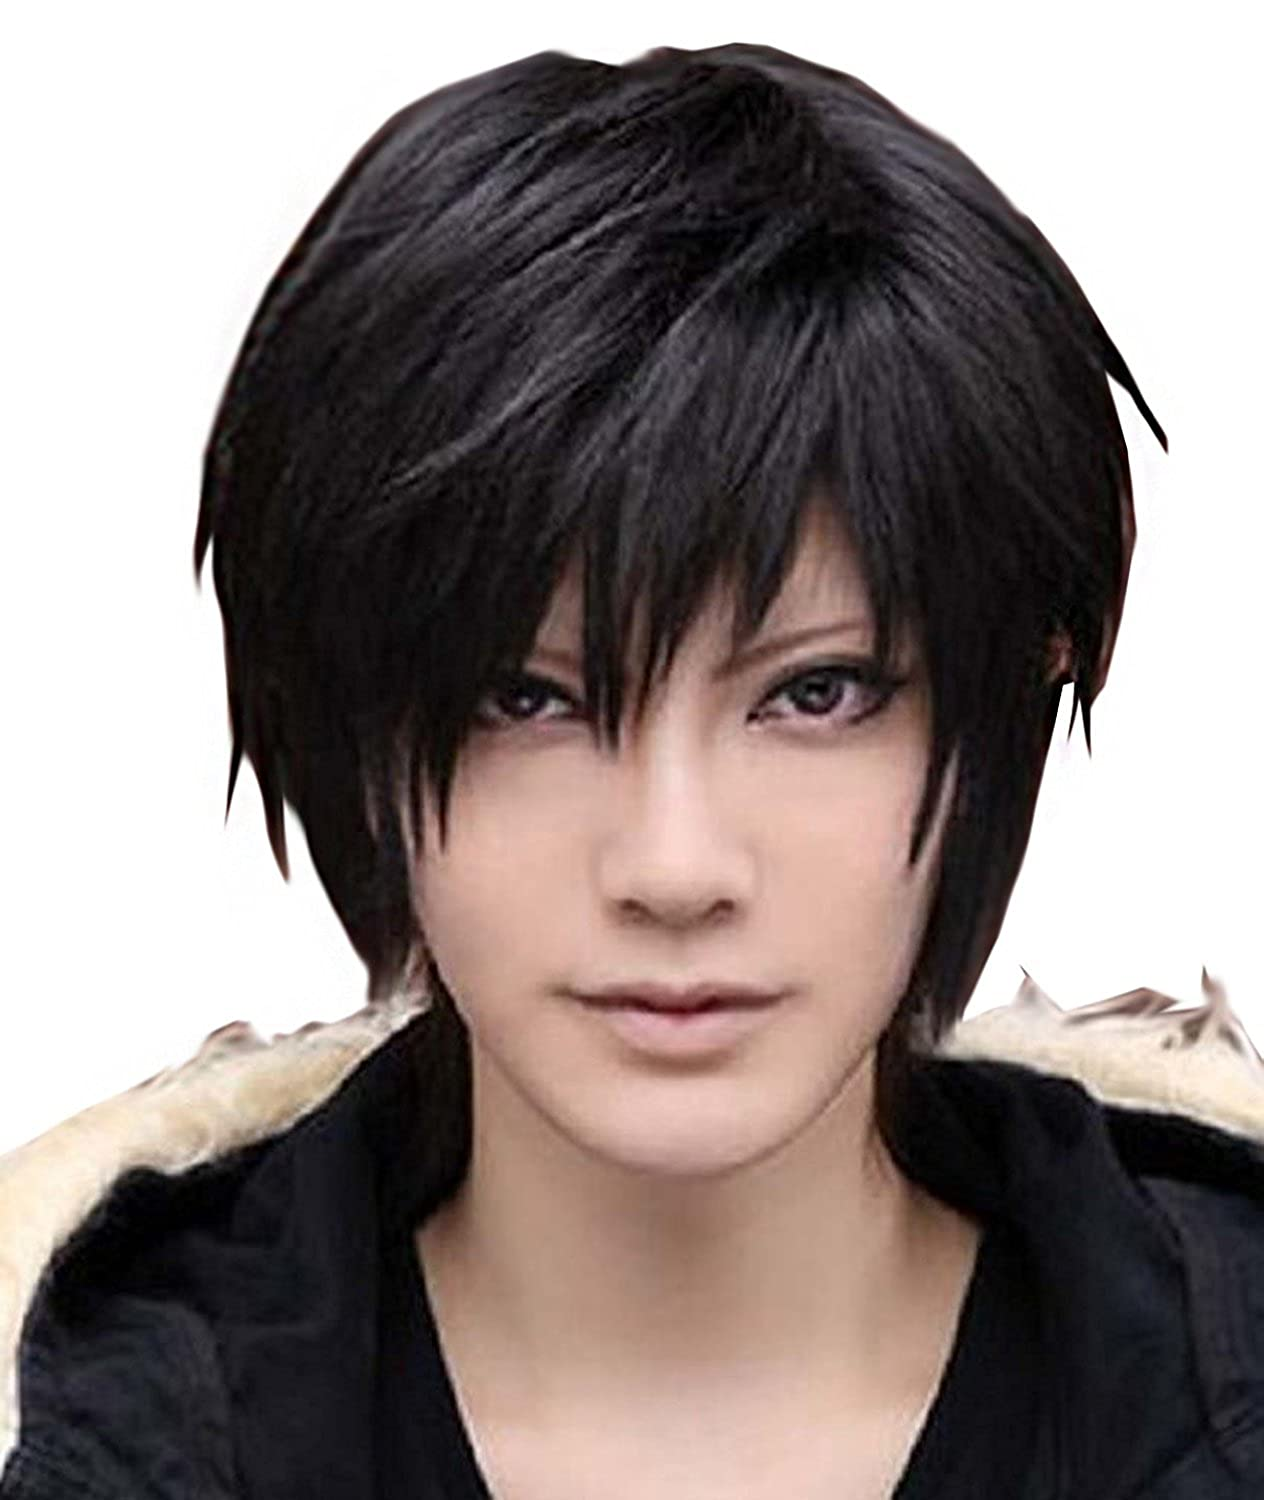 LYLAS Men's Beautiful Black Short Straight Hair Wig With Hair-net For Cosplay Party